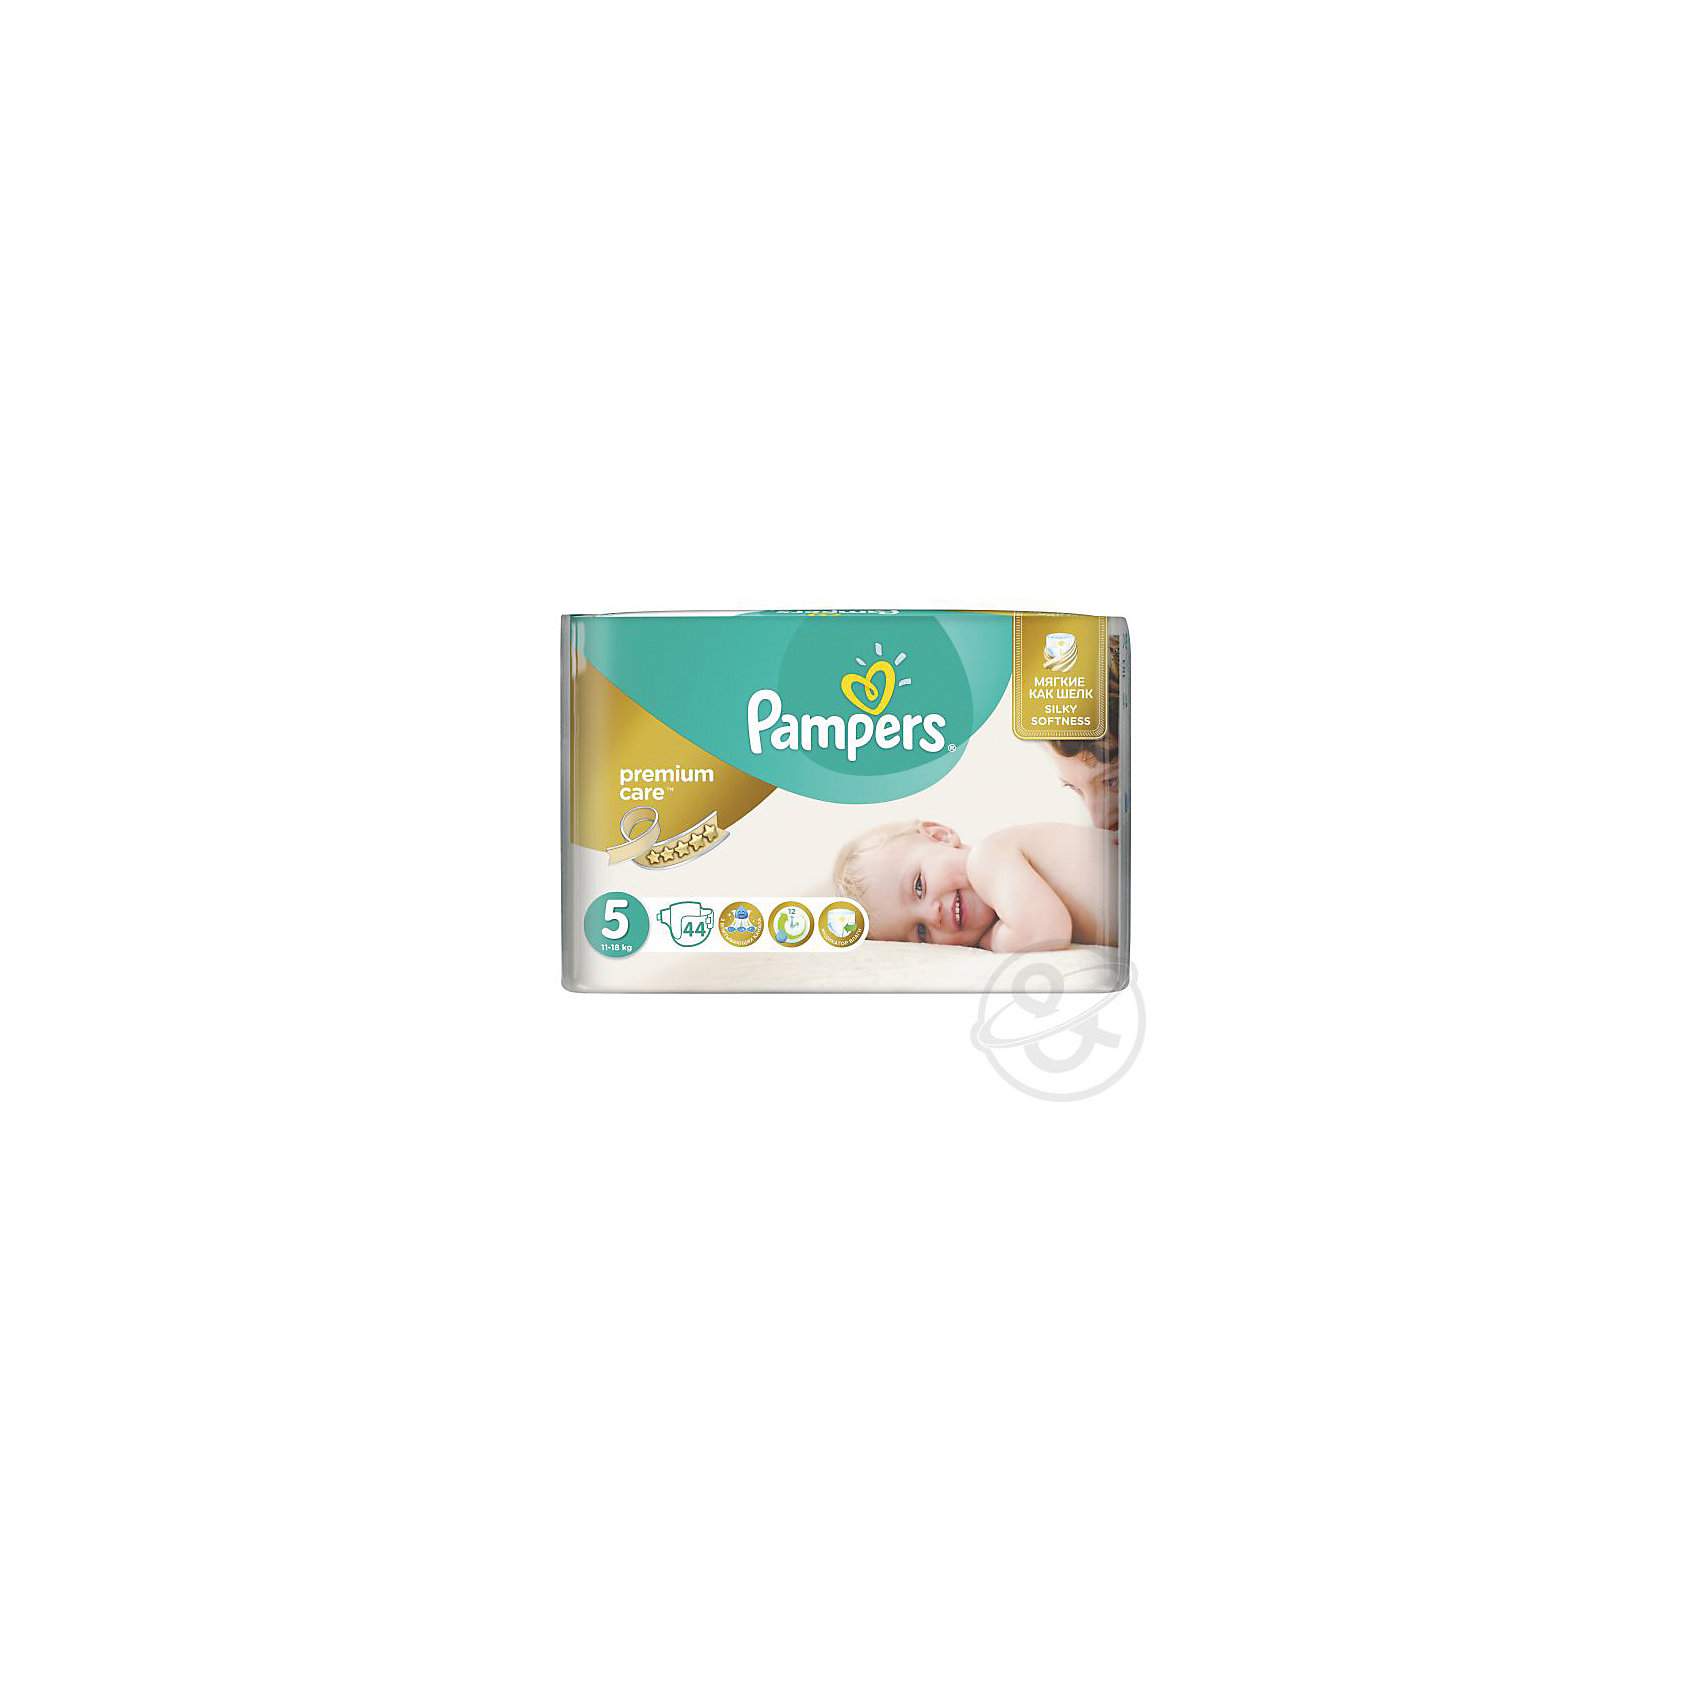 Подгузники Pampers Premium Care, 11-18 кг, 5 размер, 44 шт., Pampers